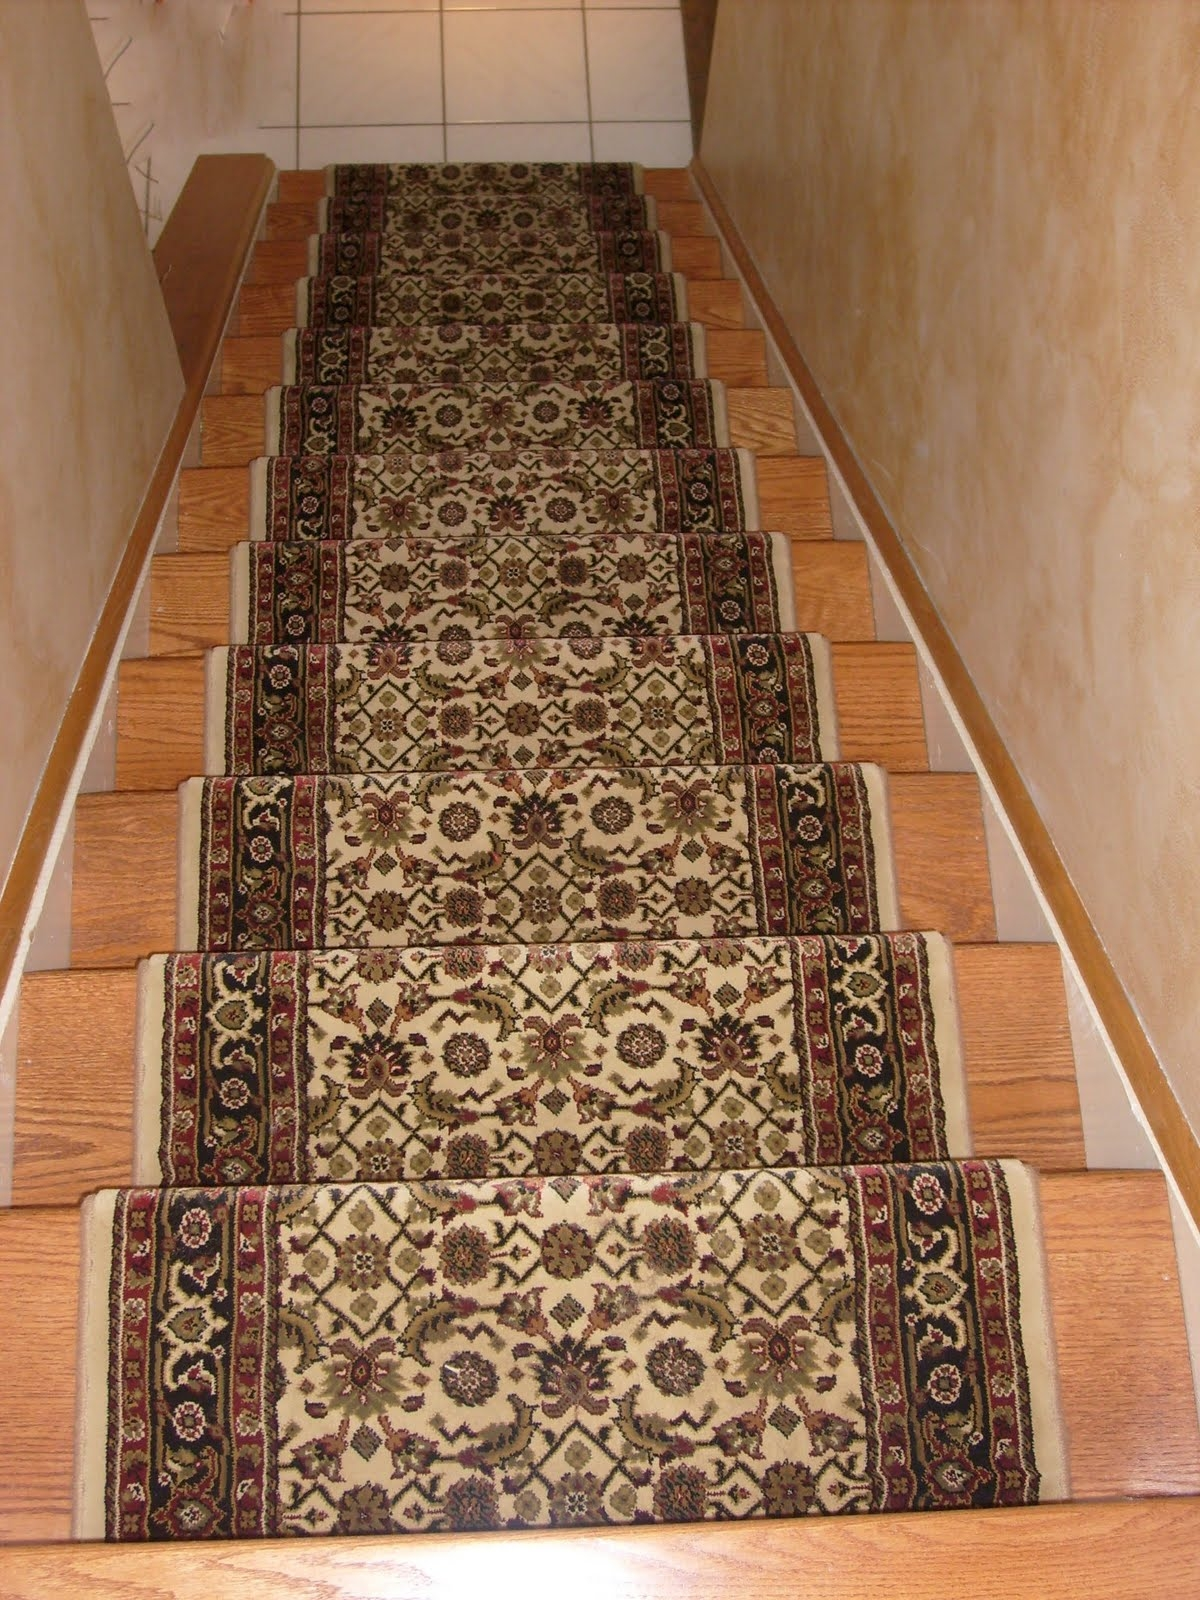 Inspiration about Special Stair Runners Latest Door Stair Design Intended For Rug Runners For Stairs (#13 of 20)